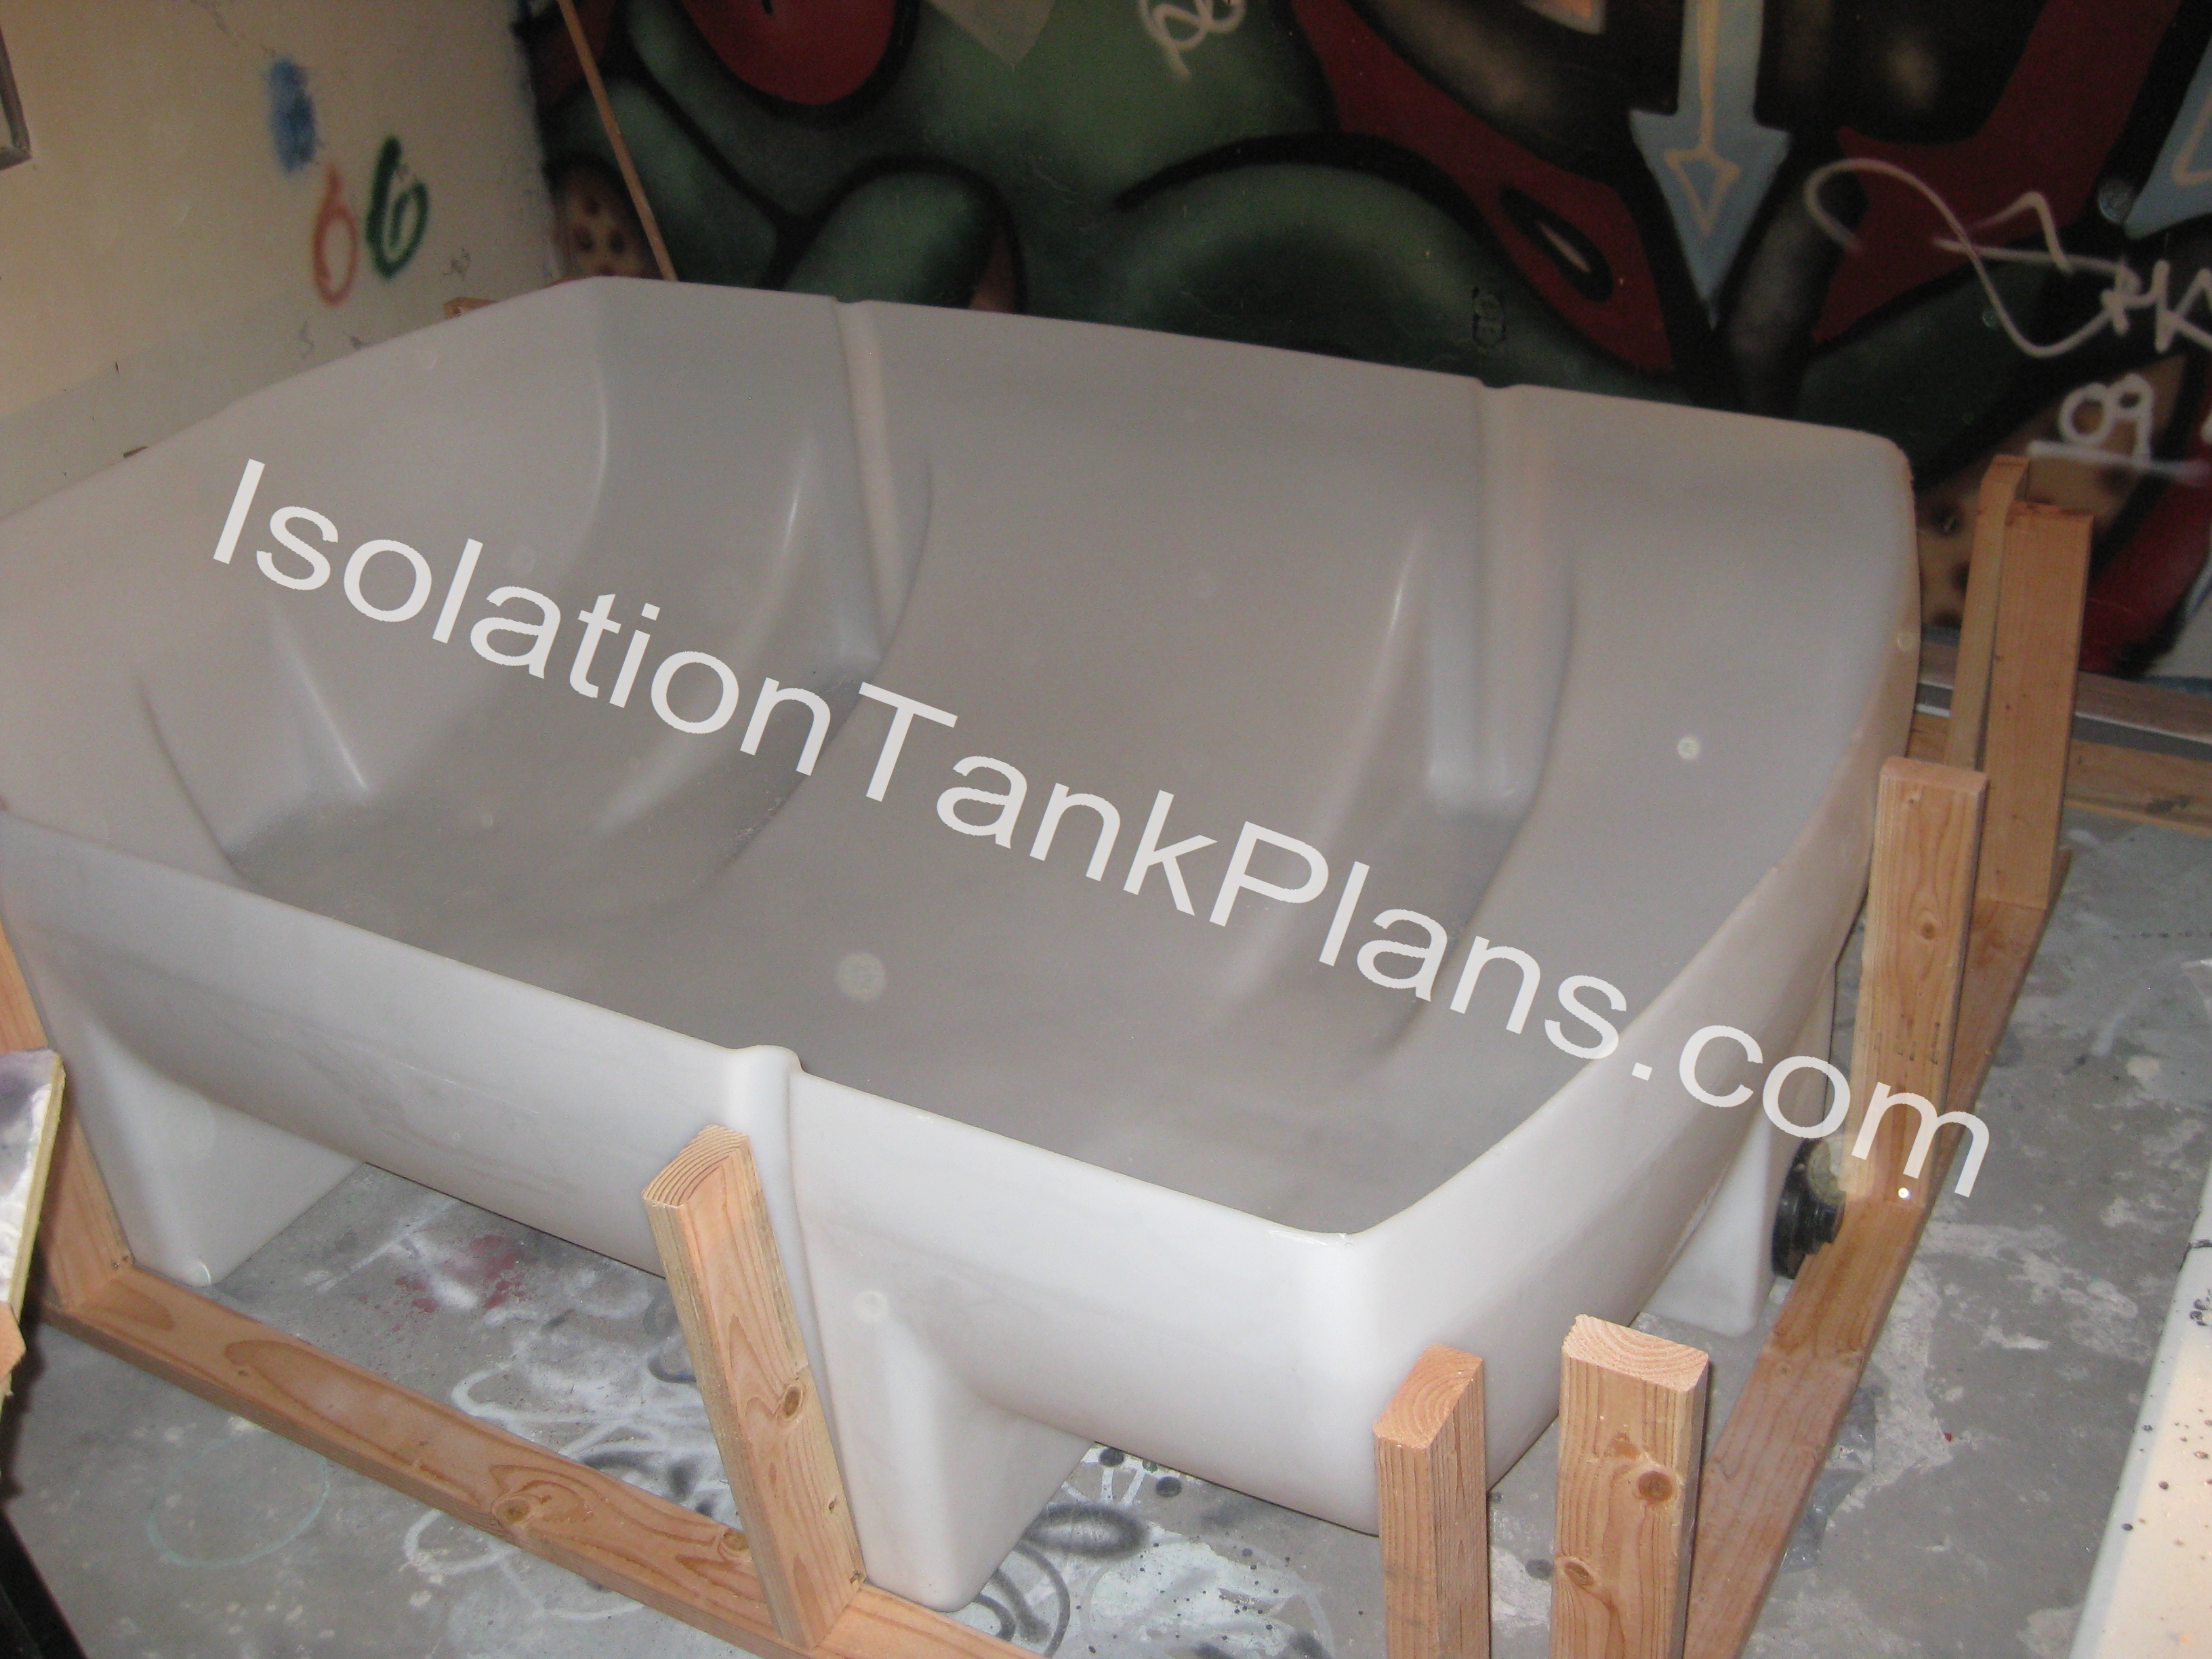 how to build an isolation tank